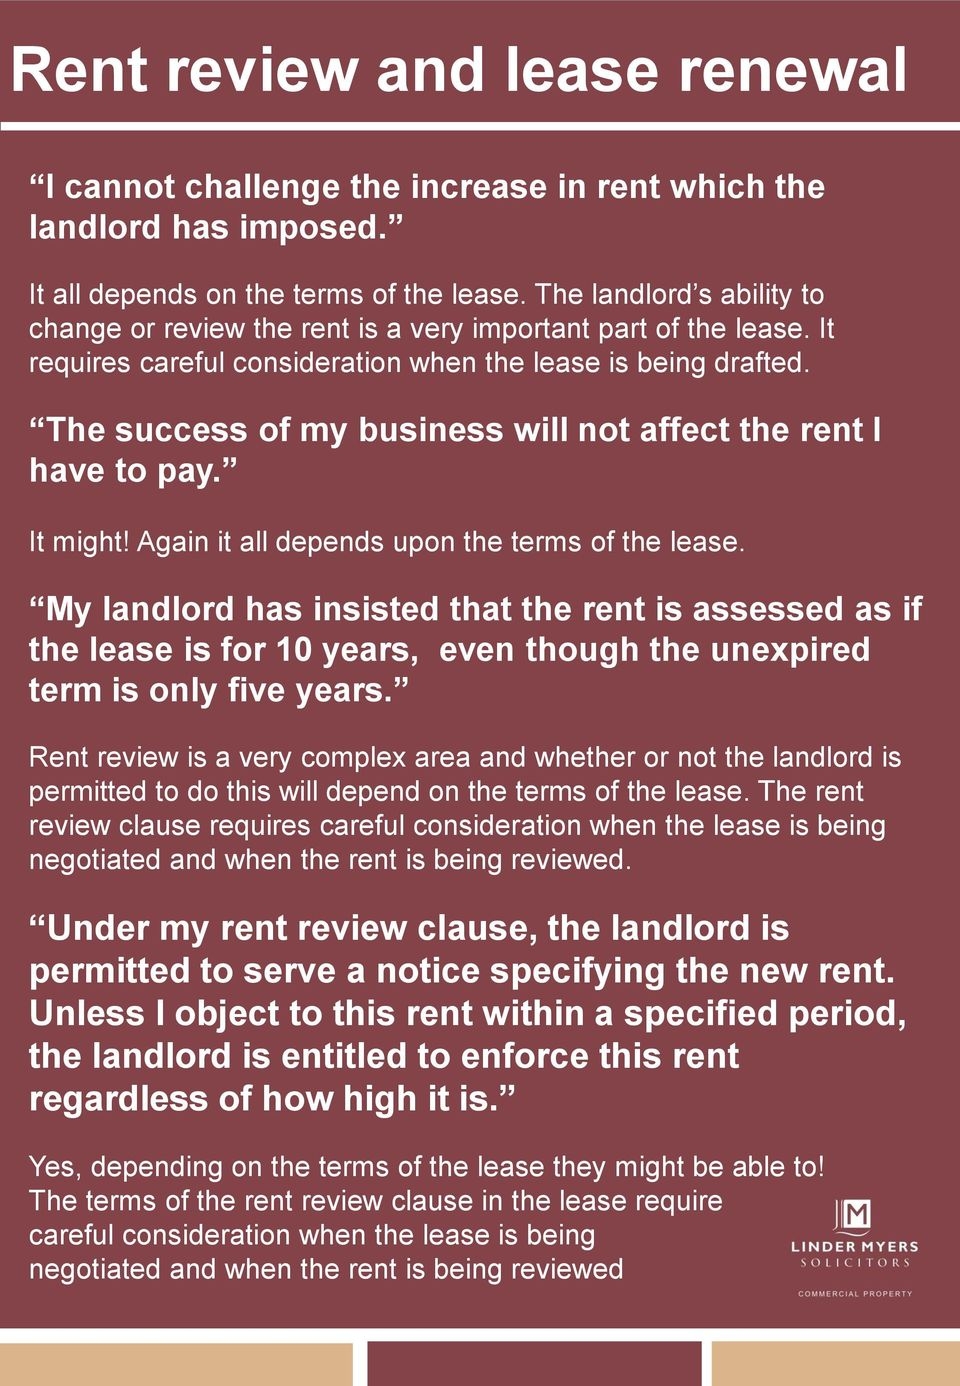 The success of my business will not affect the rent I have to pay. It might! Again it all depends upon the terms of the lease.